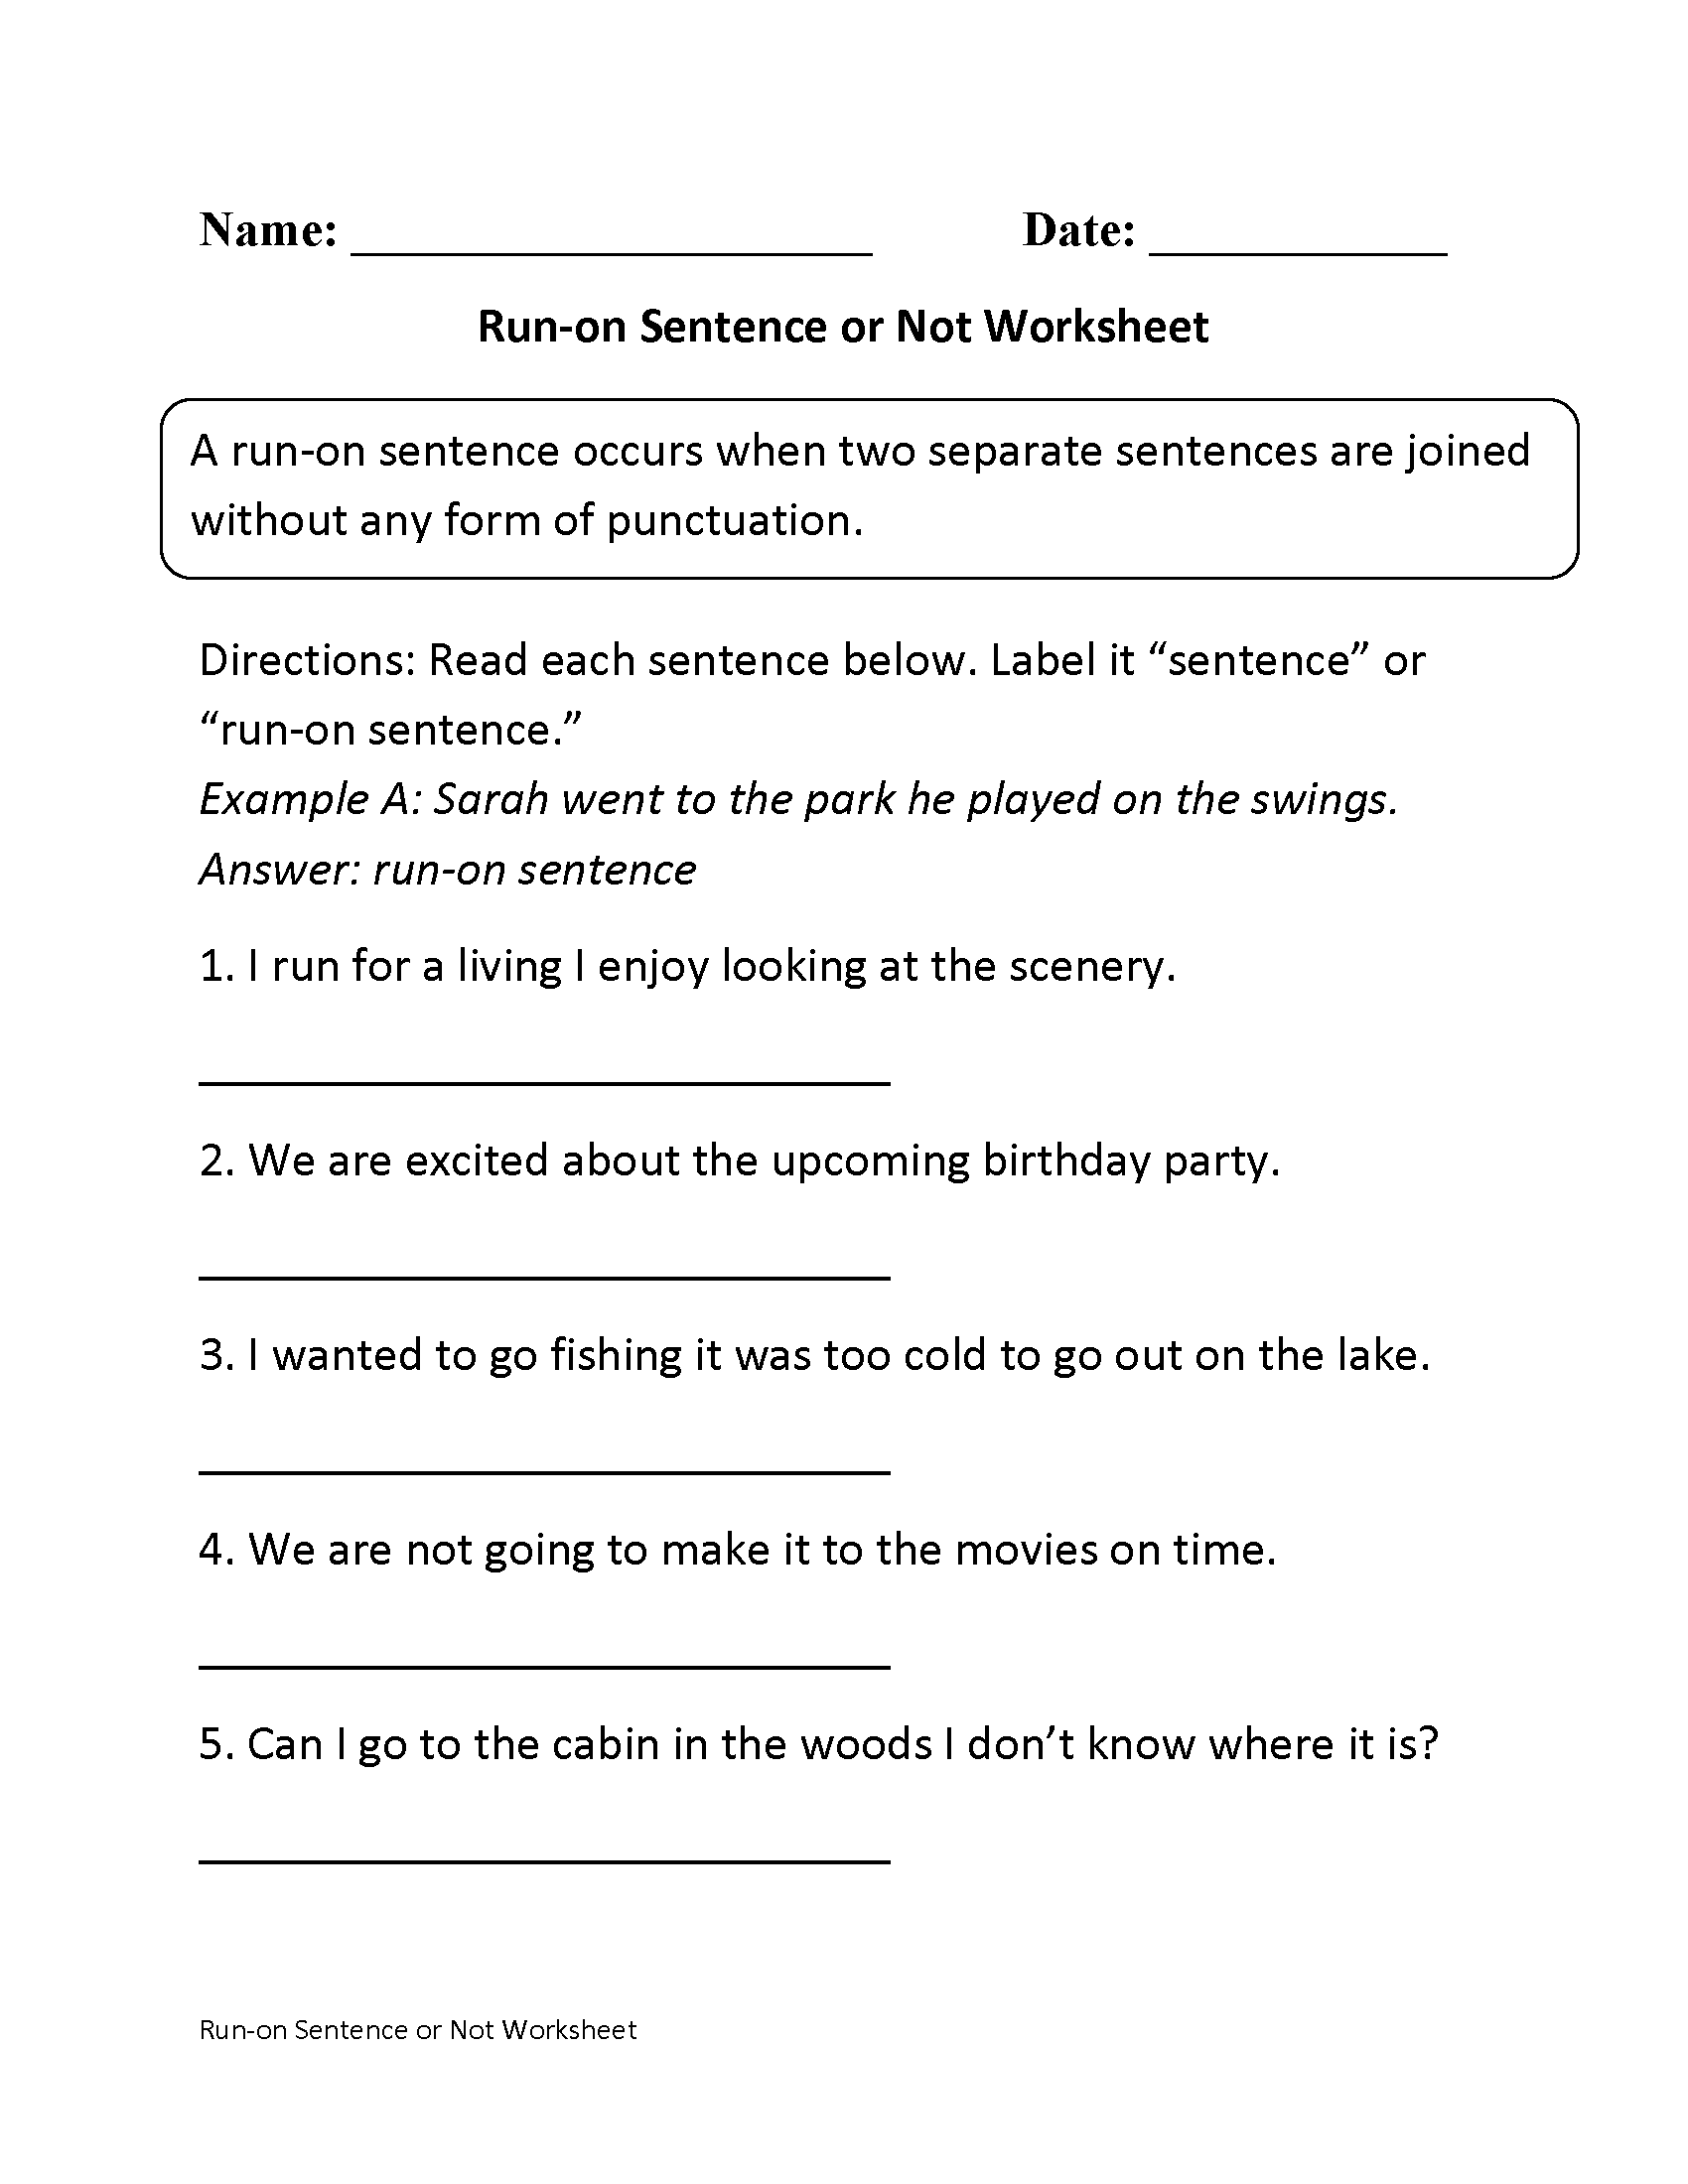 Printables Run On Sentence Worksheet sentences worksheets run on or not worksheet